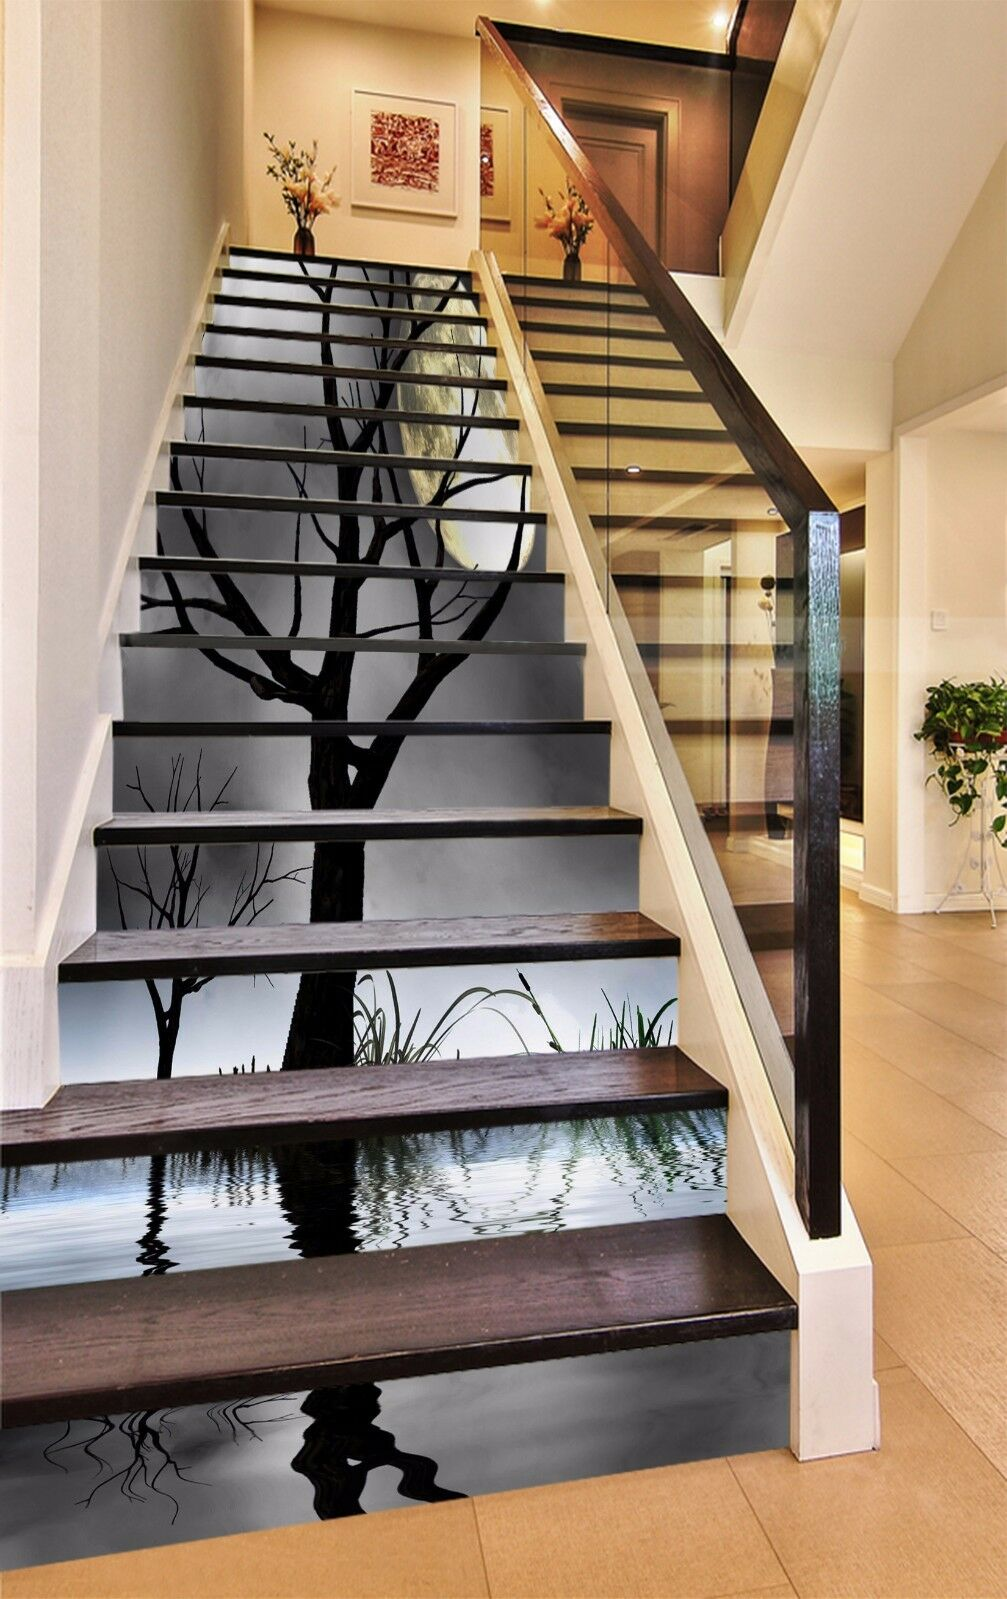 3D Sea Bare Trees 9 Stair Risers Decoration Photo Mural Vinyl Decal Wallpaper AU